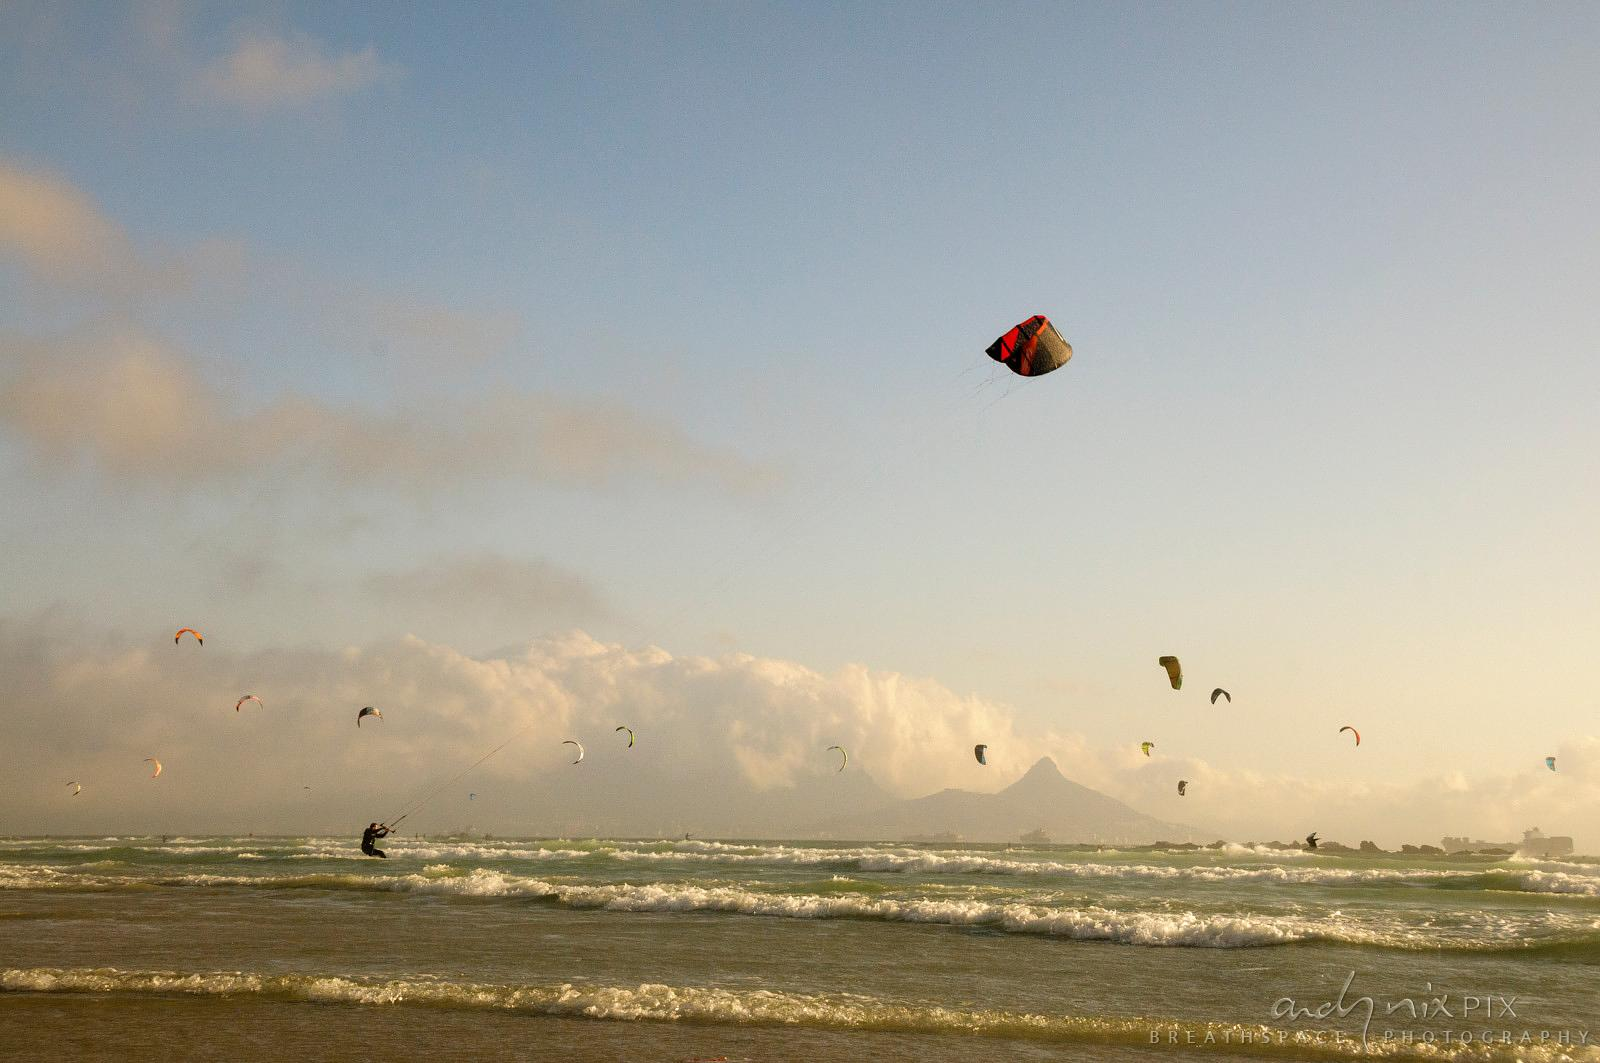 Many kitesurfers on sea with Table Mountain in background